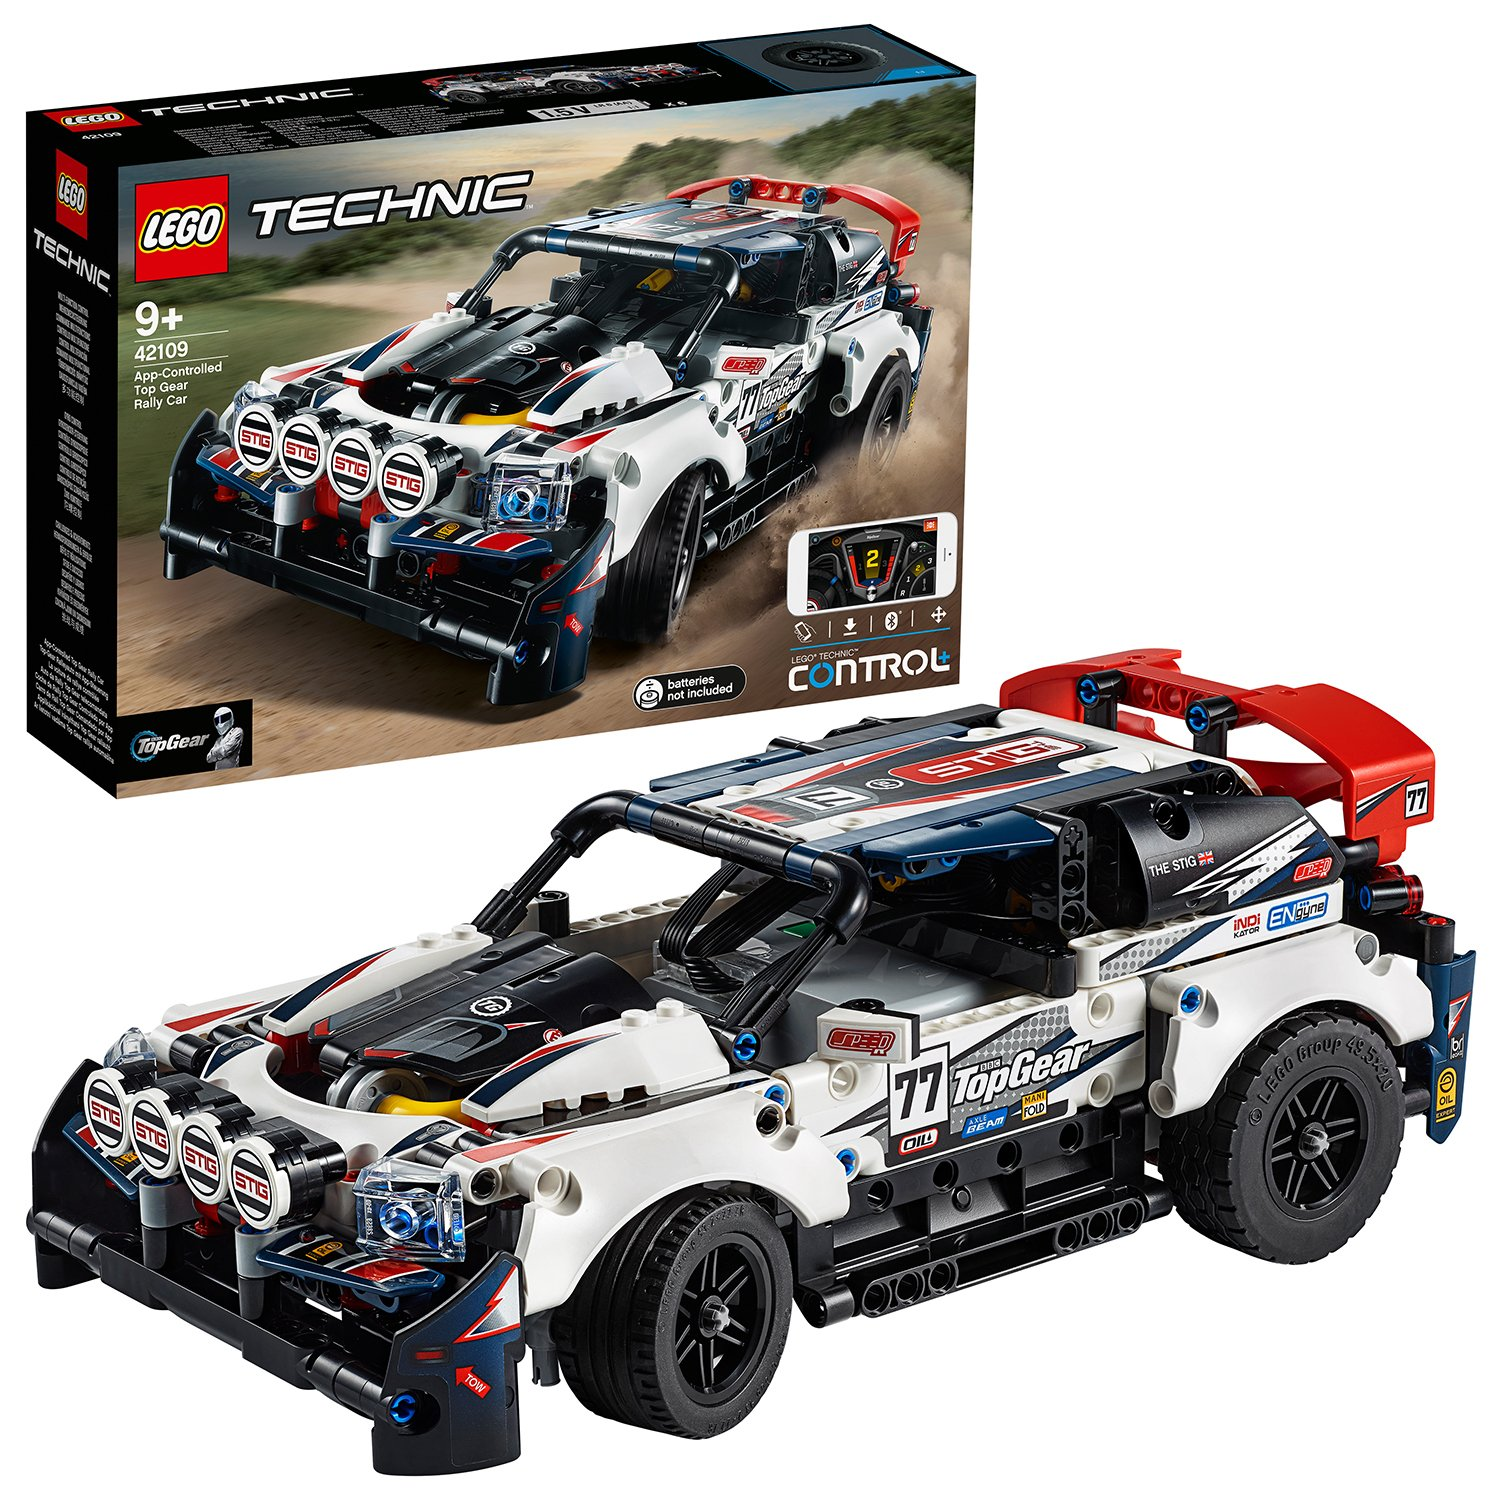 LEGO Technic Control+ Top Gear Rally Car RC Toy 42109